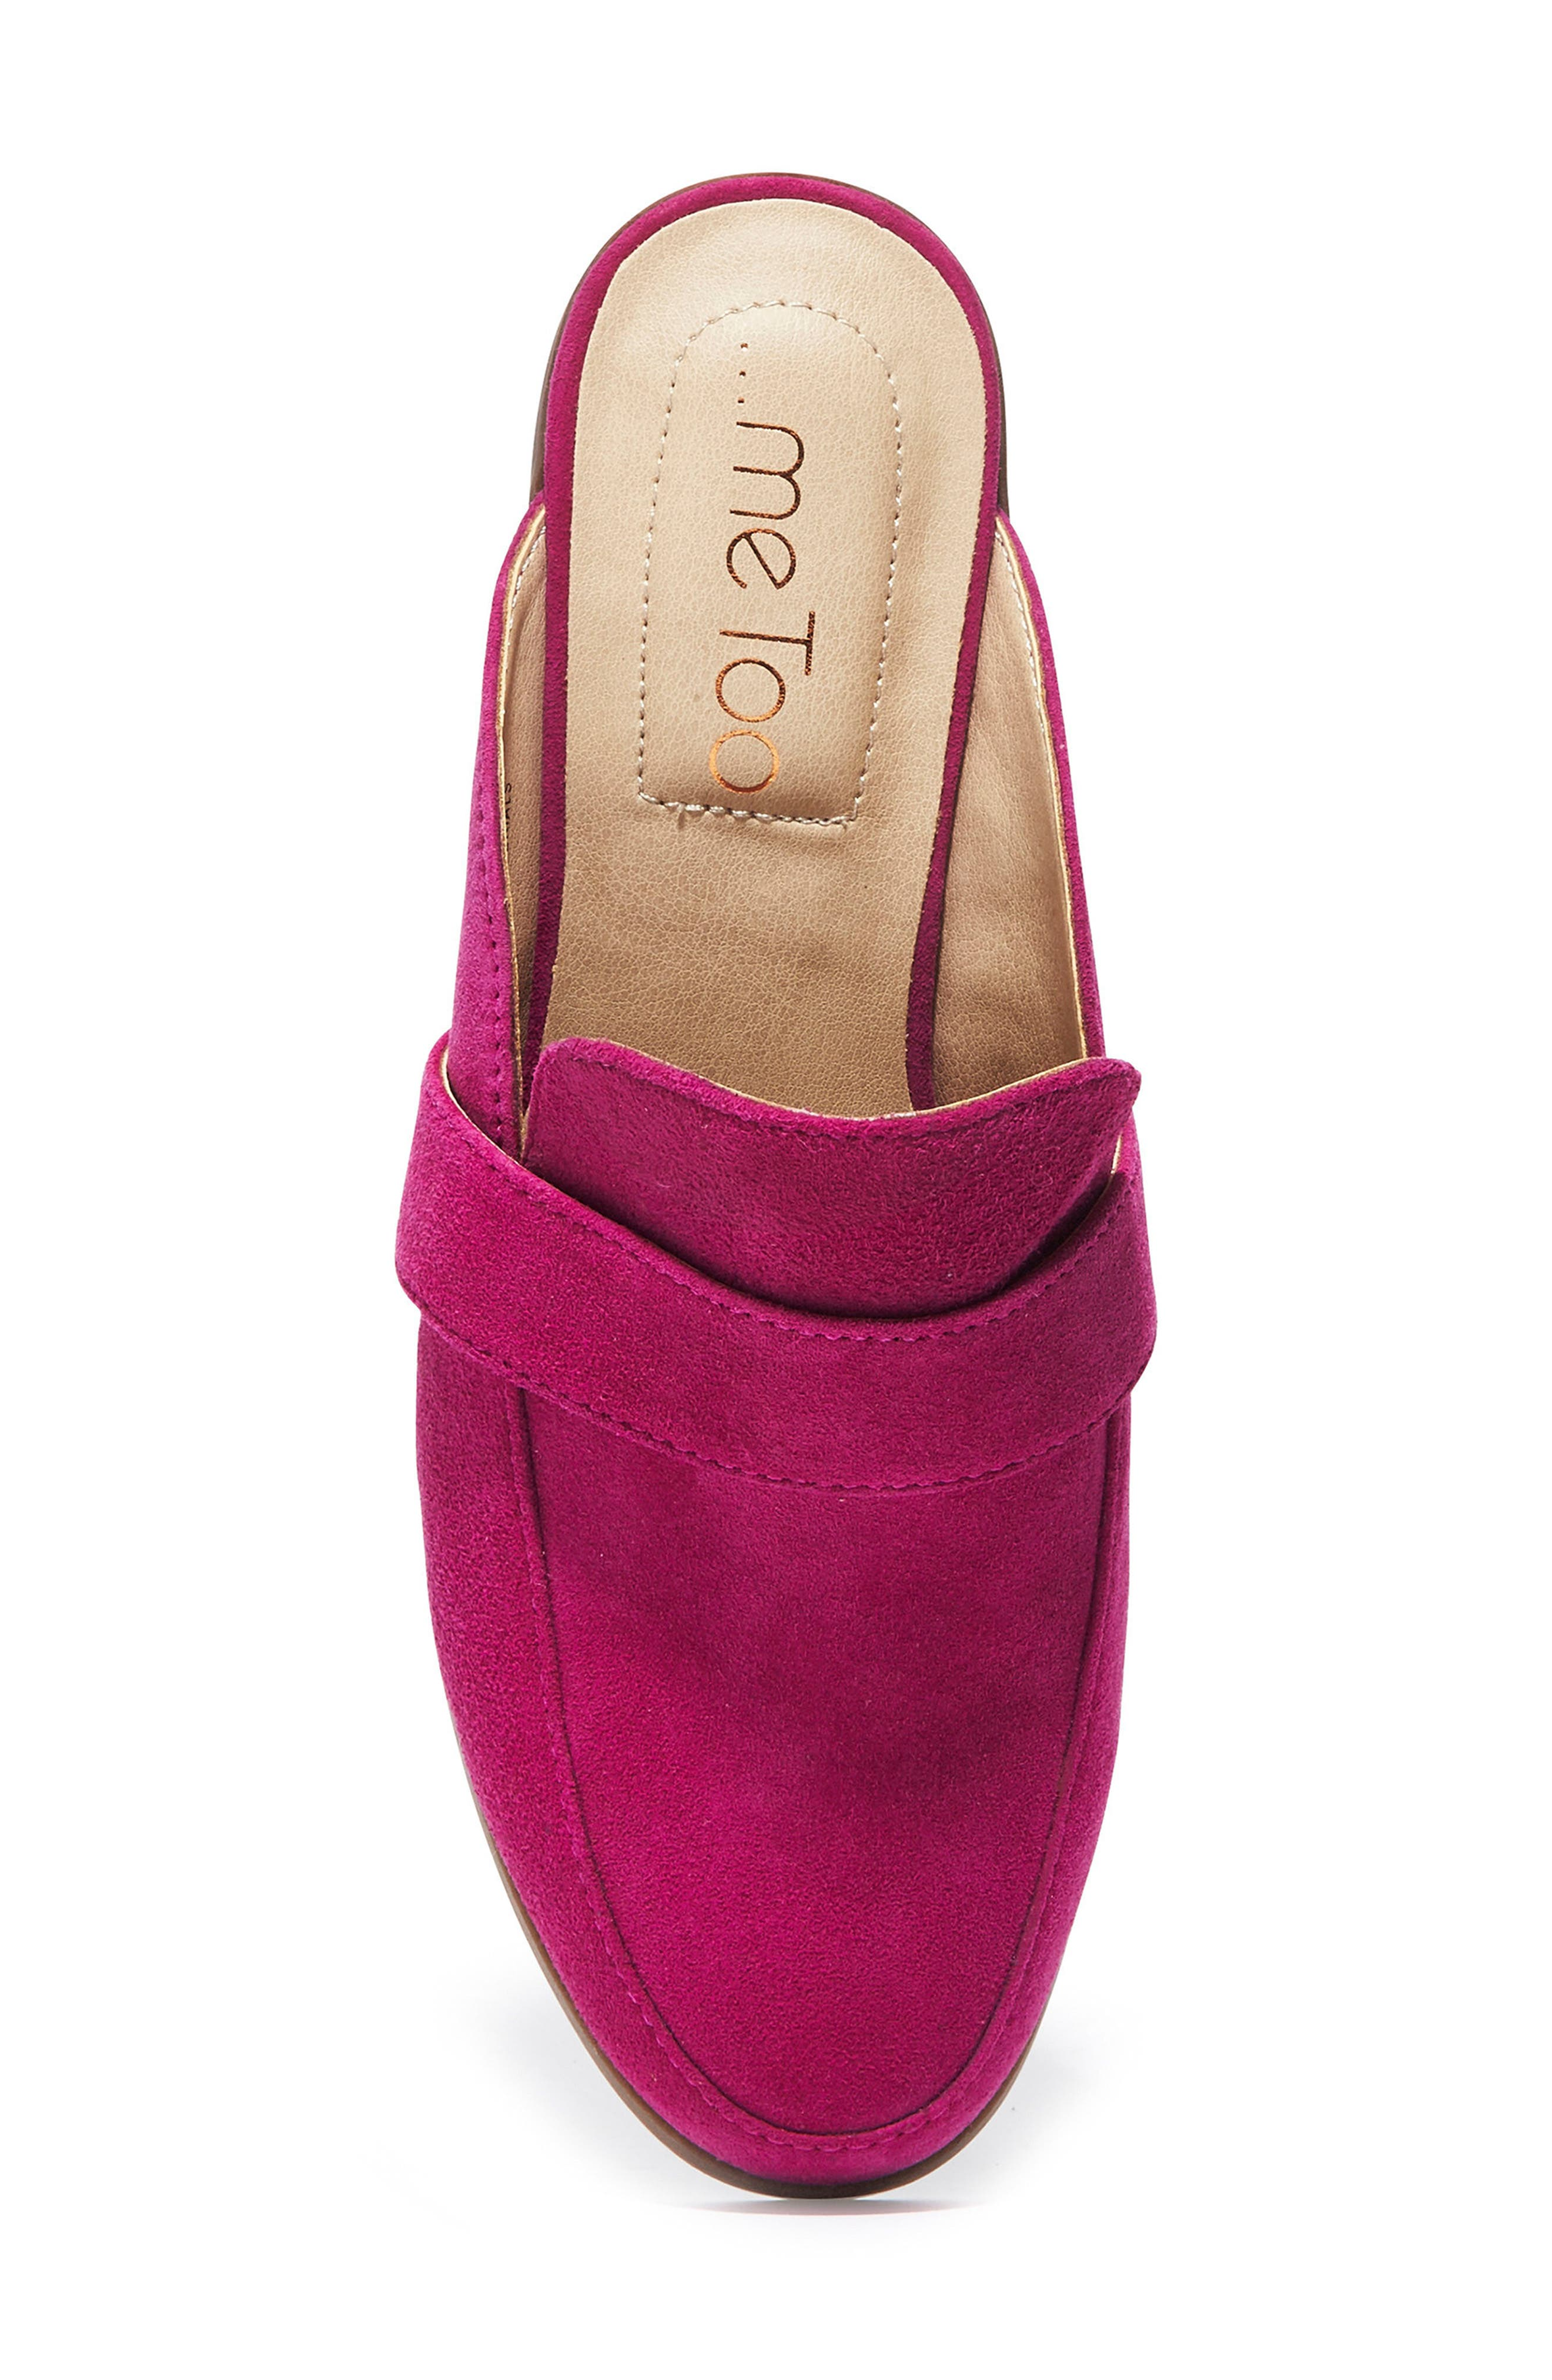 Jada Loafer Mule,                             Alternate thumbnail 4, color,                             Fuchsia Suede